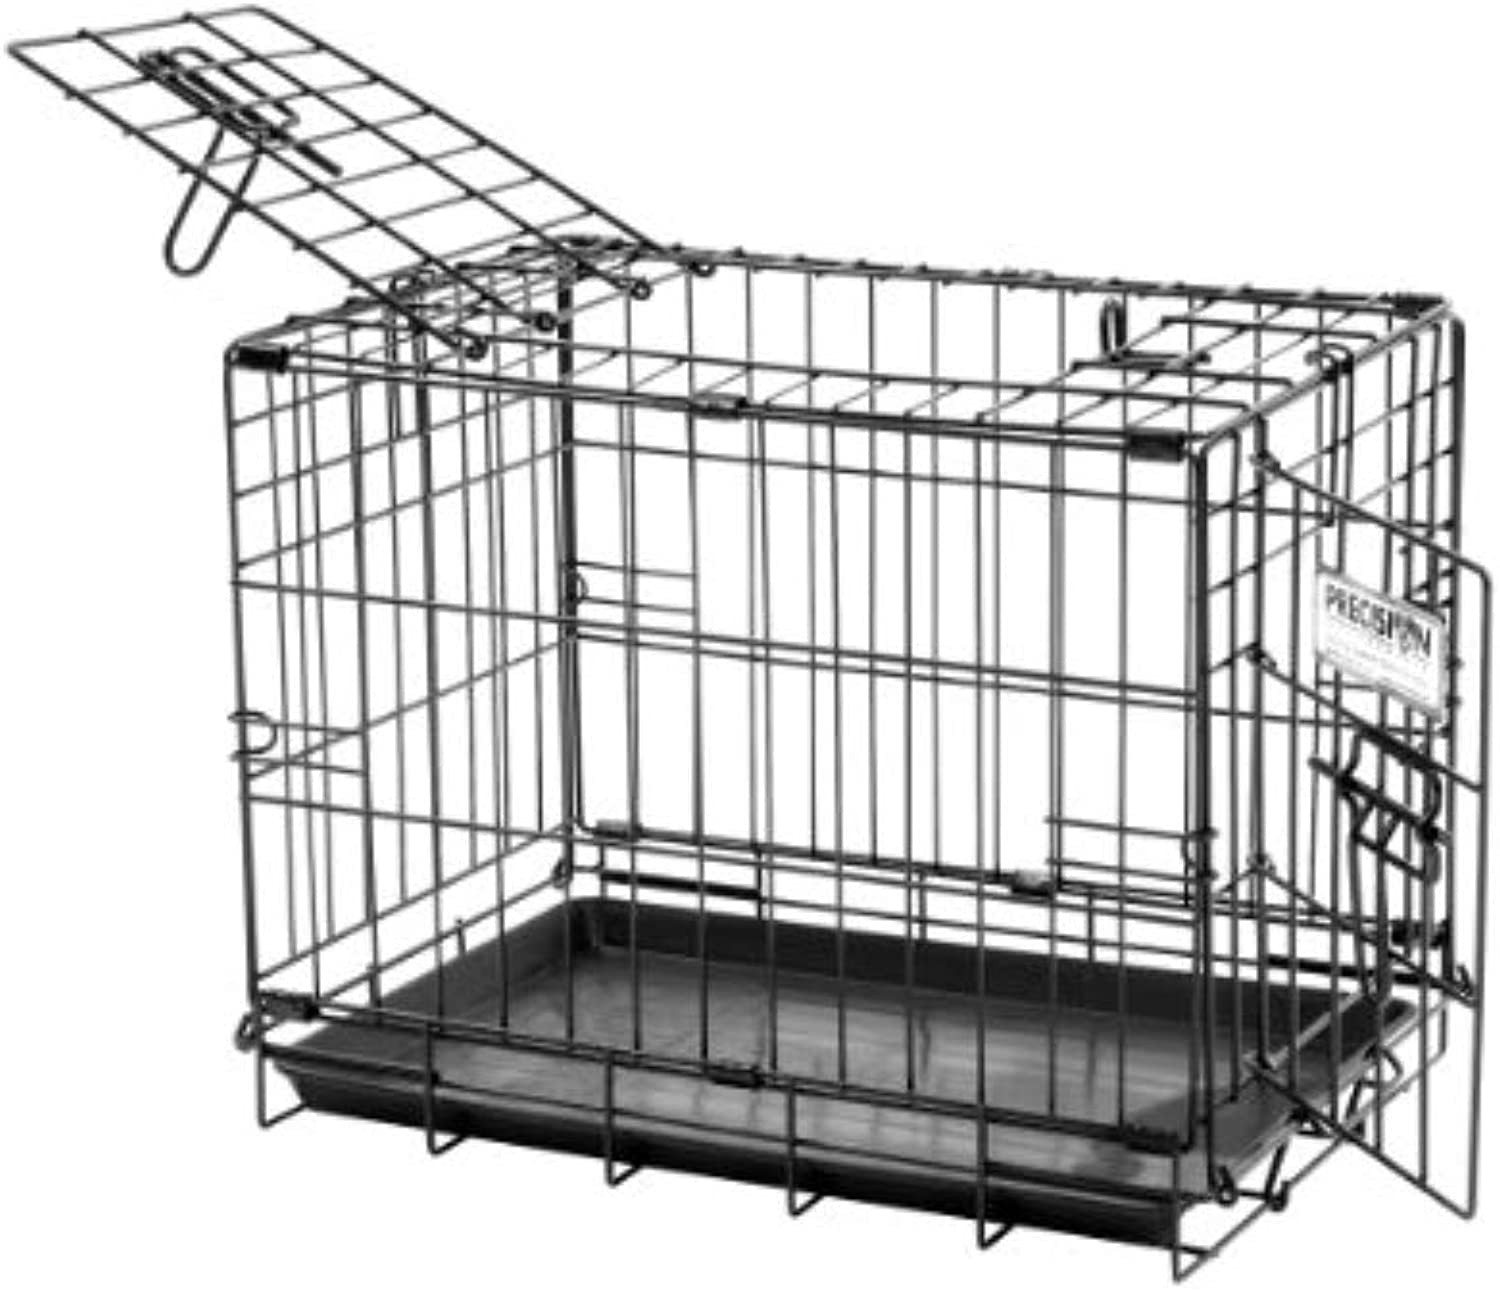 Precision Pet Products Black ProValu2 Dog Crate 1000, 19Inchby12Inchby14Inch, 2Door